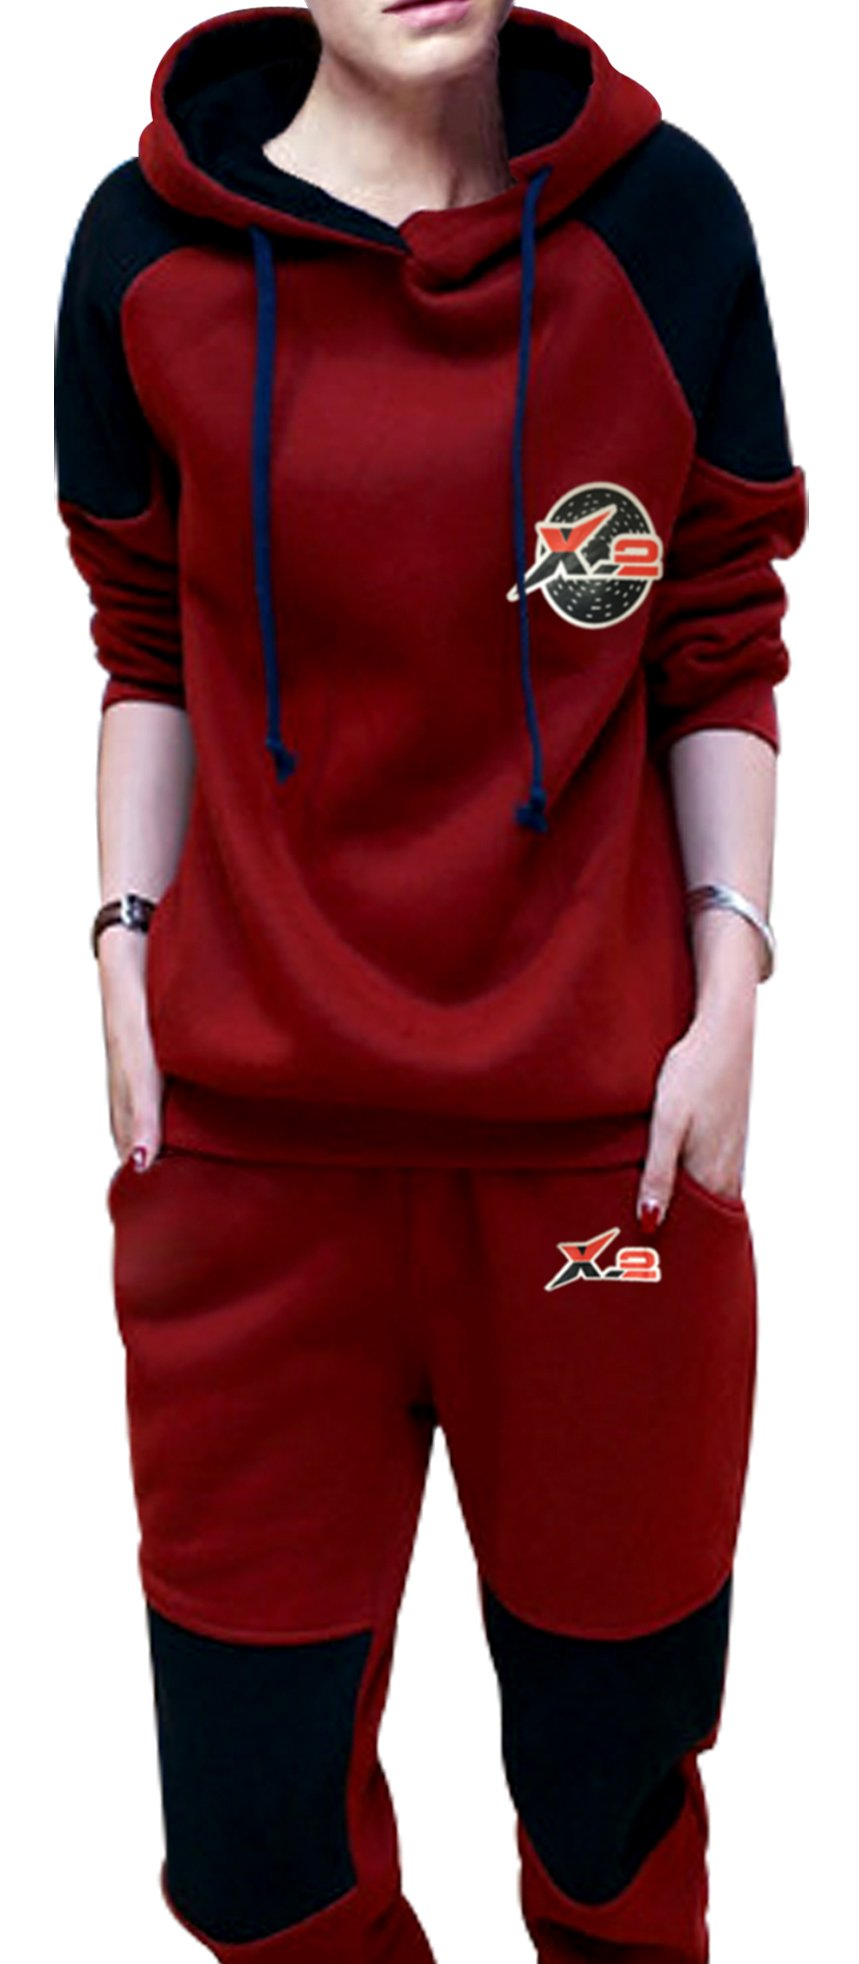 X-2 Women Athletic Fleece Tracksuit Sweatsuit Activewear Navy-Panel Maroon XXL by X-2 (Image #2)